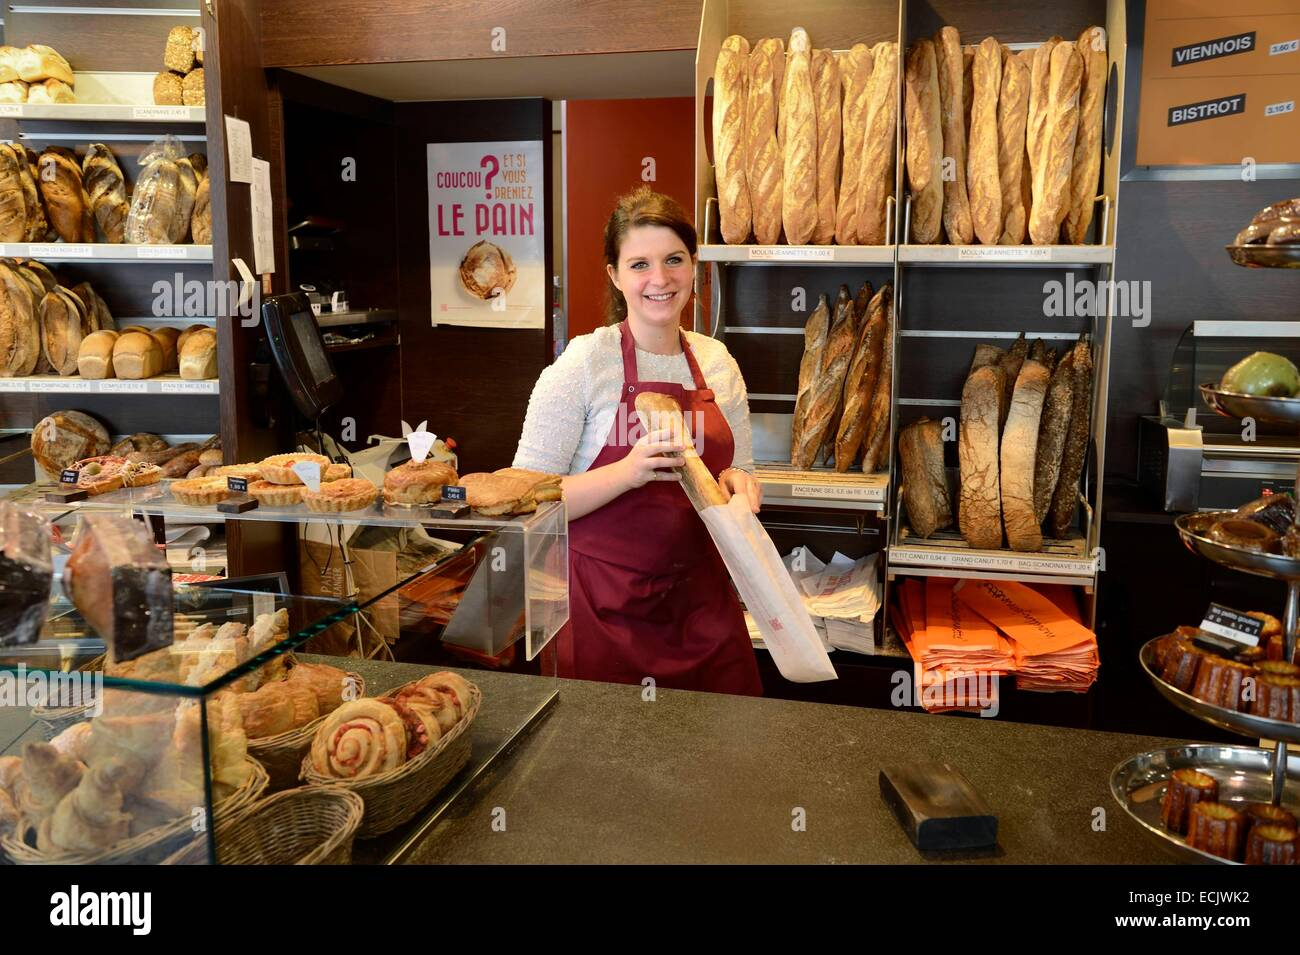 France, Meurthe et Moselle, Nancy, bakery and pastry Stef - Stock Image